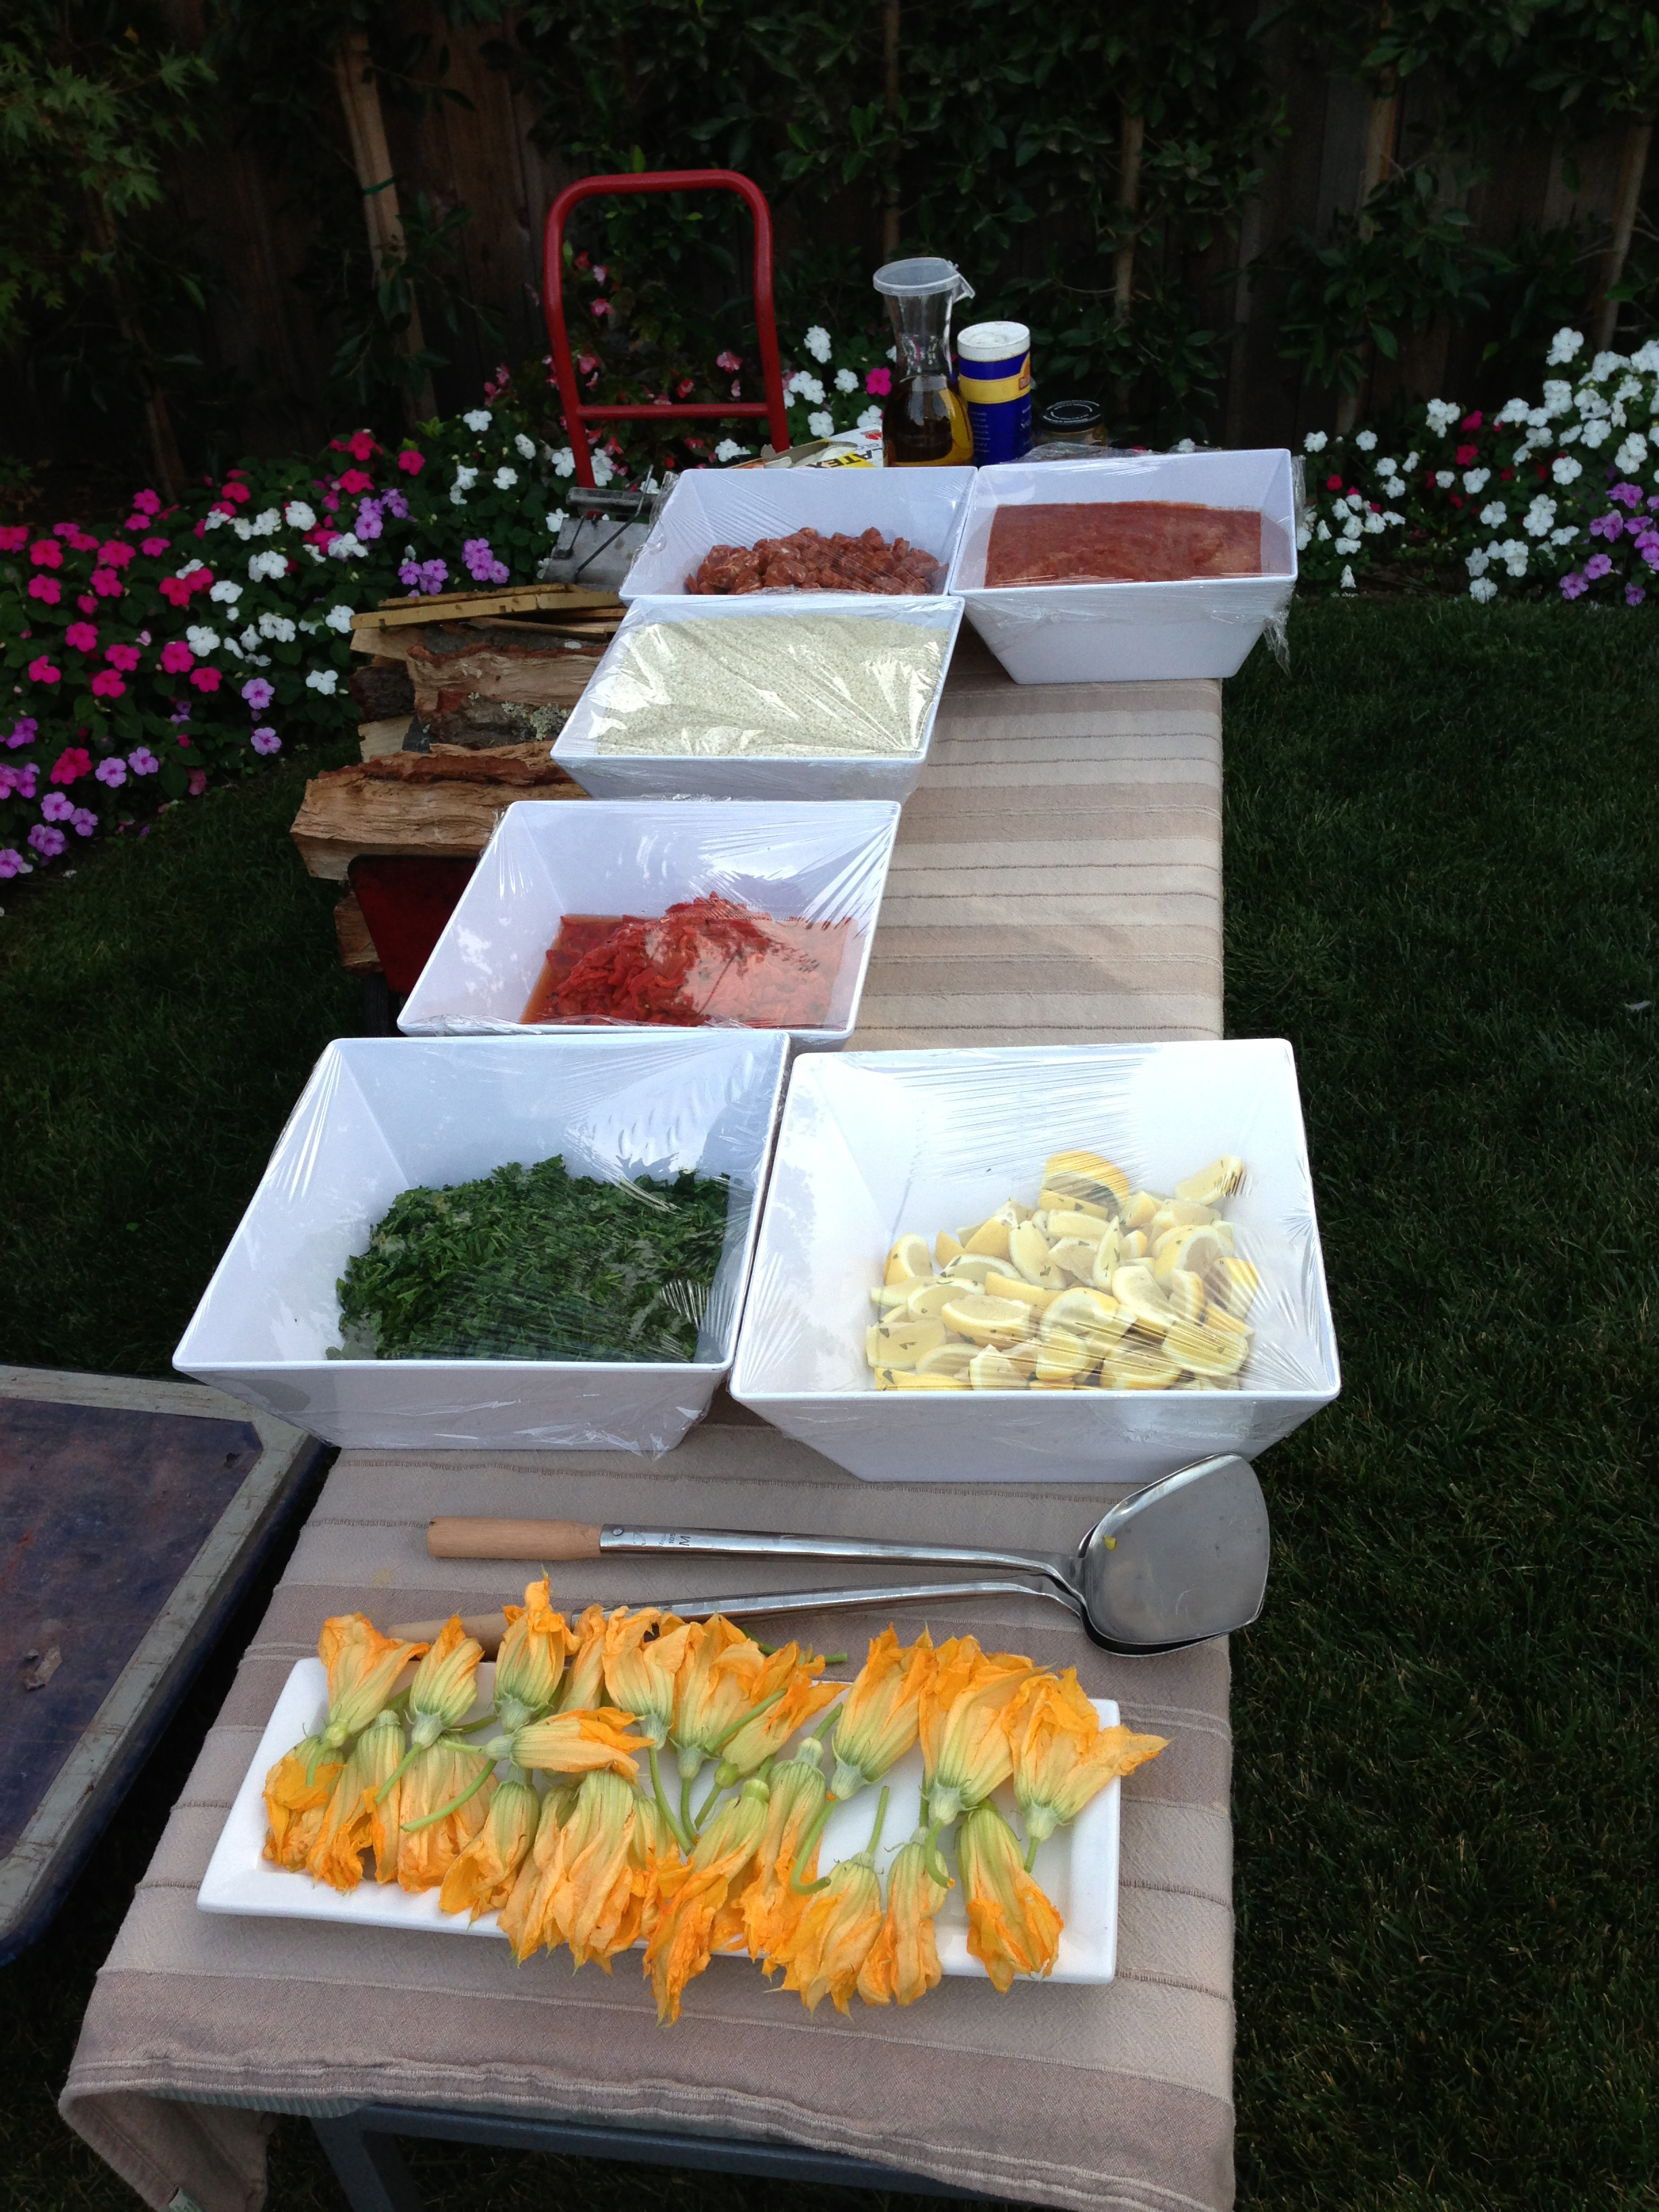 bomba-paella-catering-los-angeles7.JPG